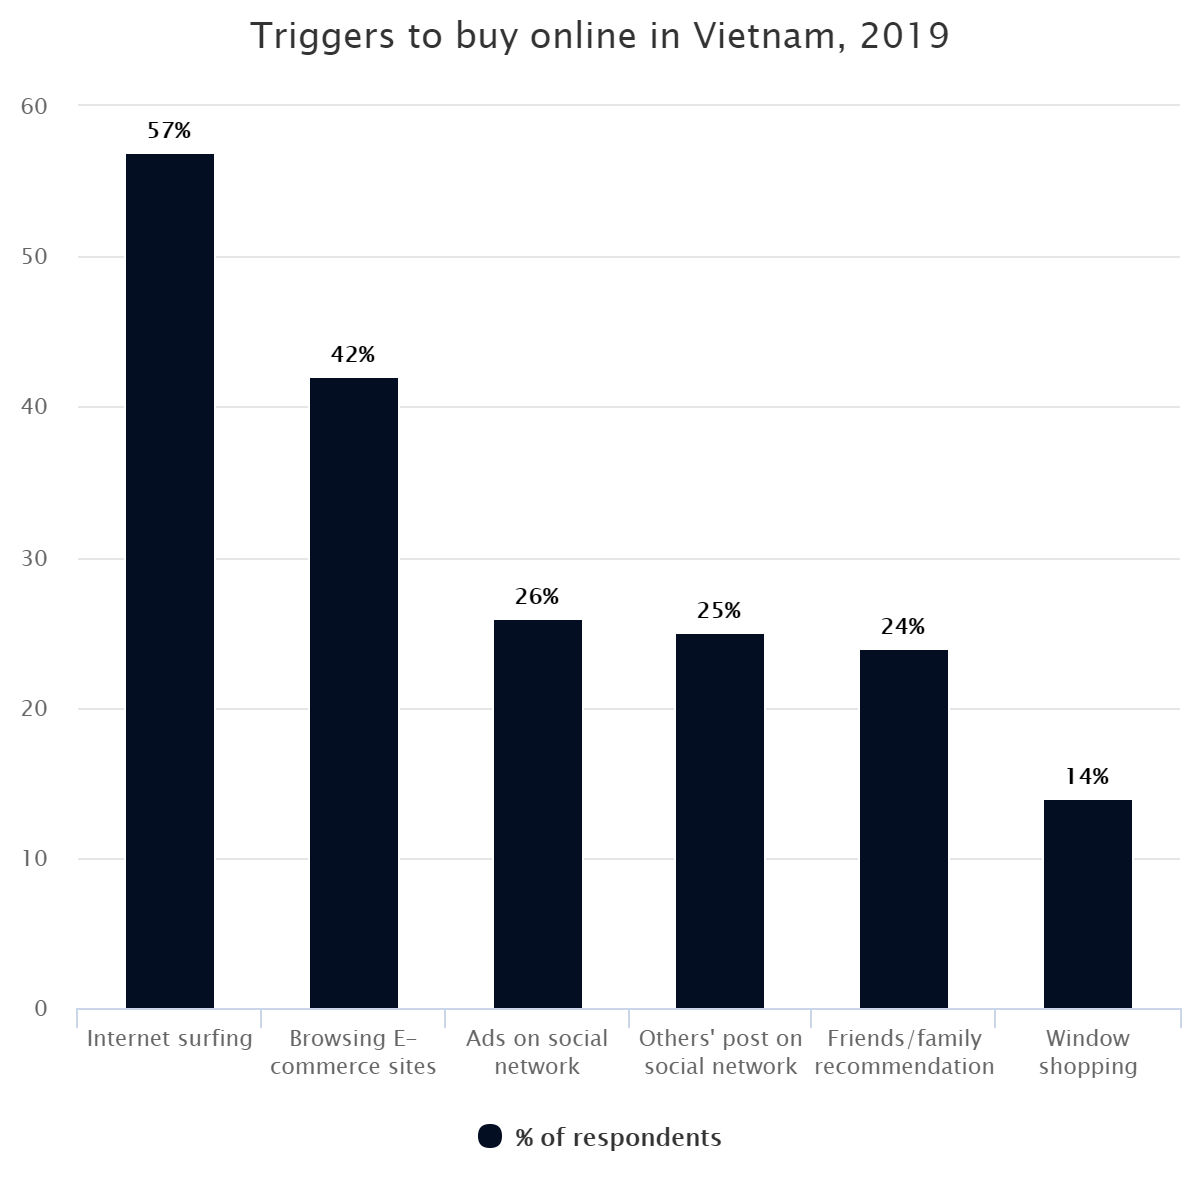 Triggers to buy online in Vietnam, 2019